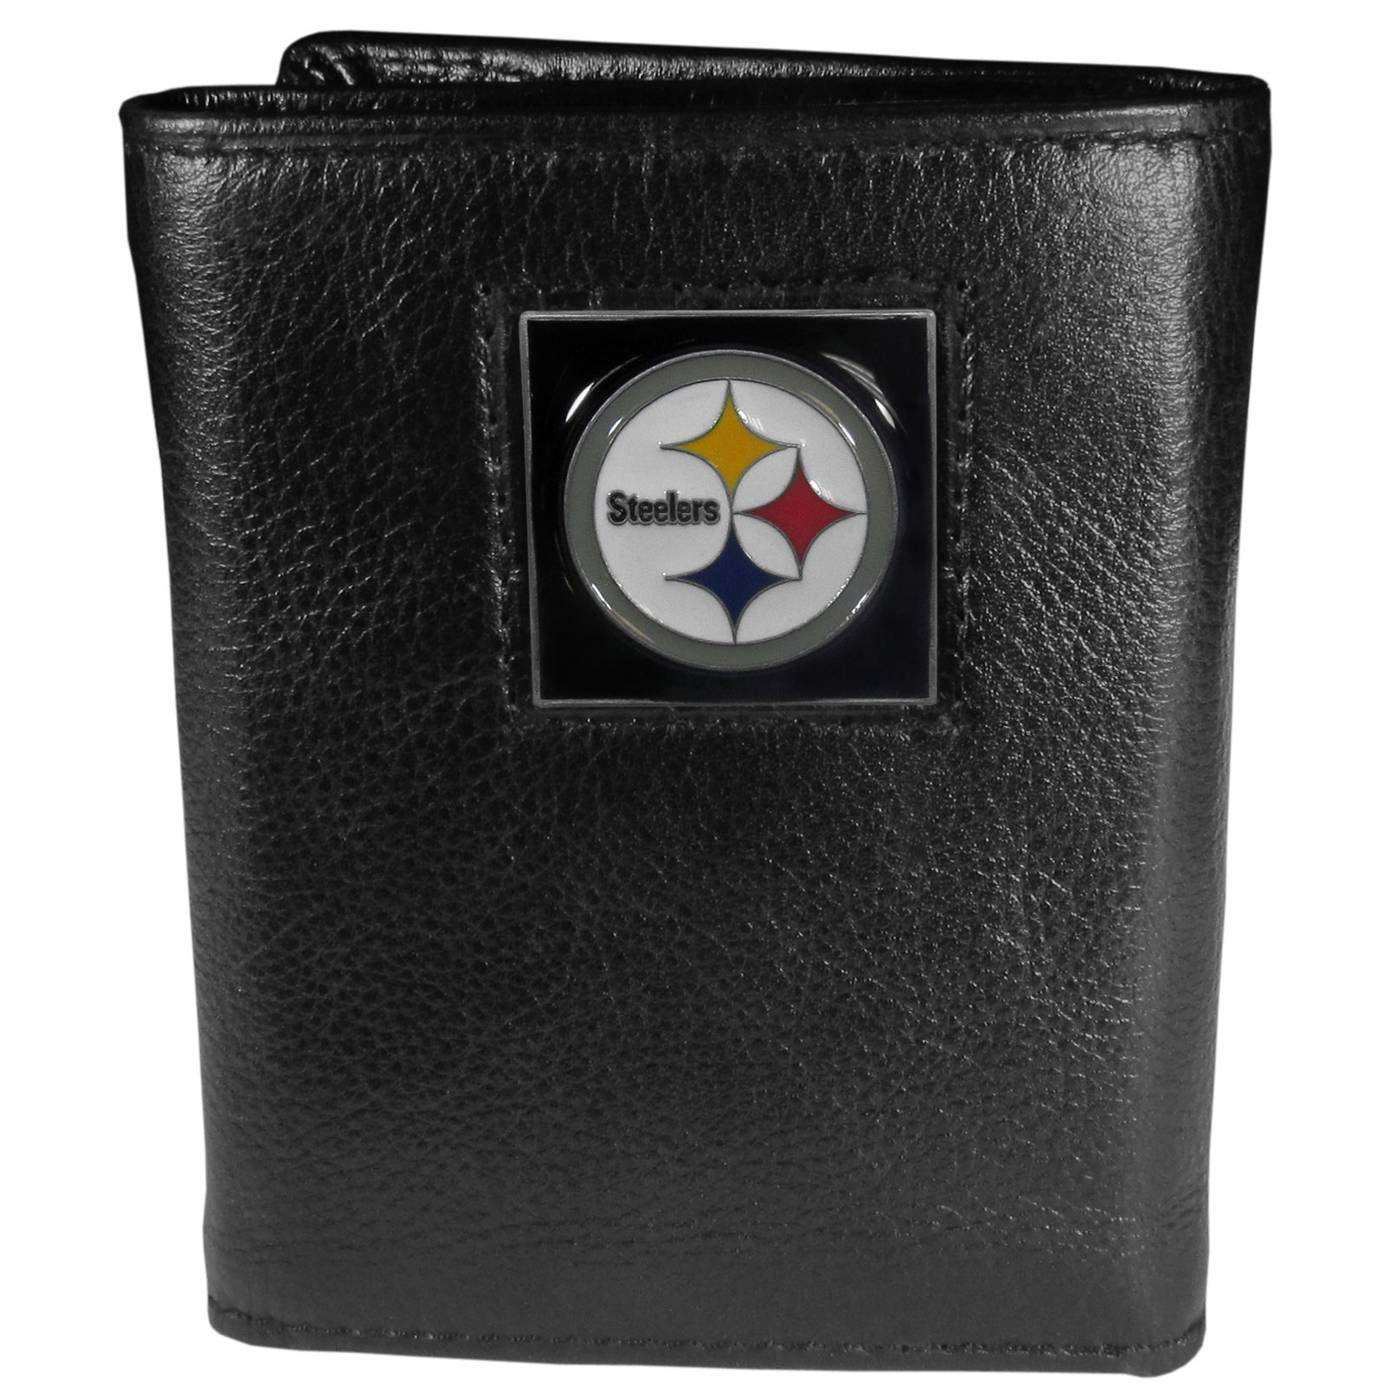 Pittsburgh Steelers Deluxe Leather Tri-fold Wallet in Gift Box 4deeb4094